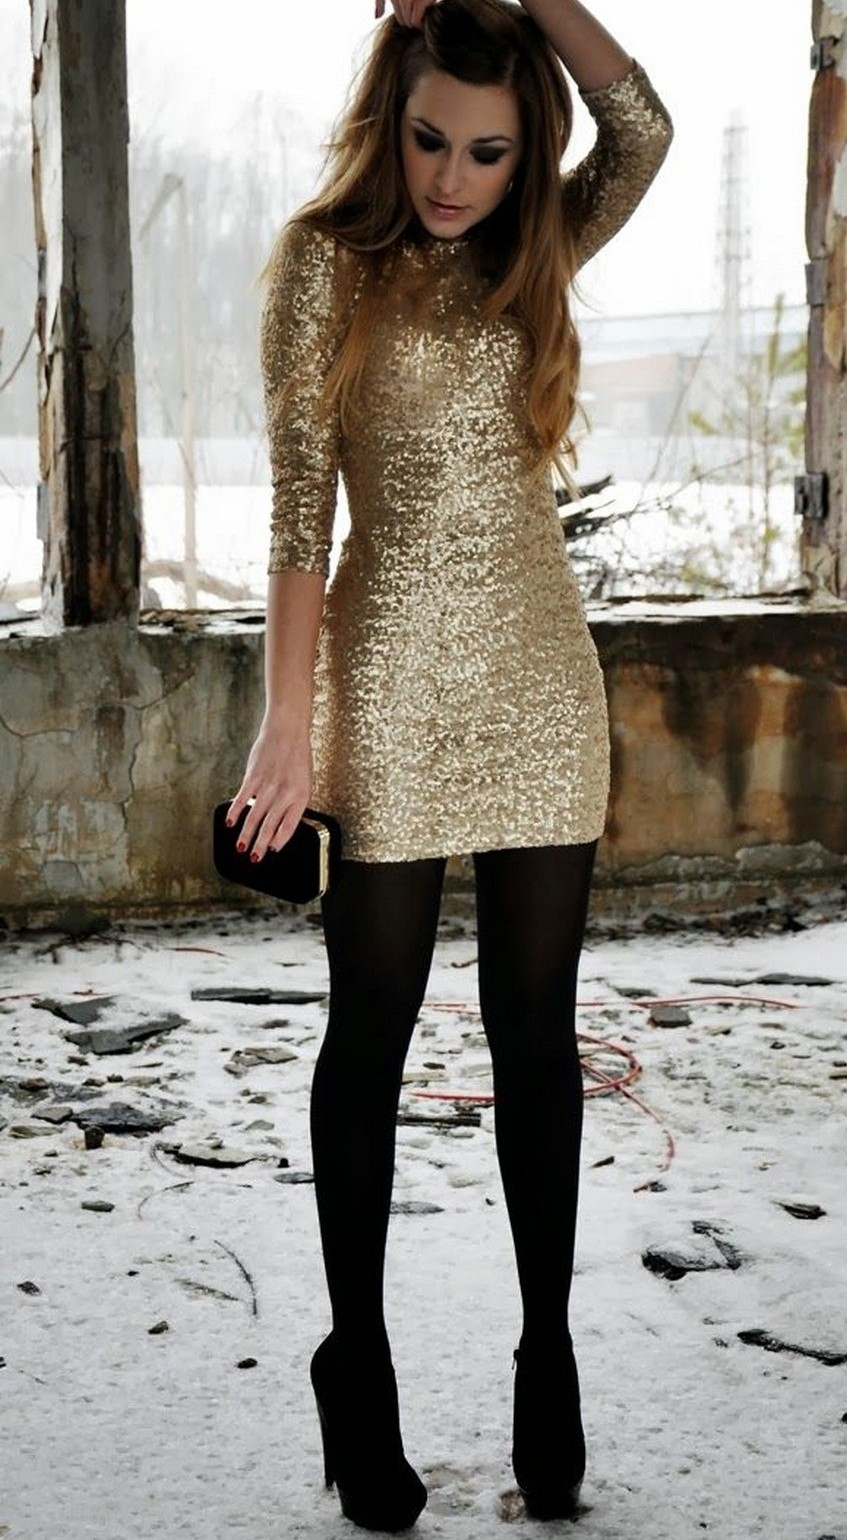 10. Sparkling | 10 Types of Dresses for Christmas Day | Image Source: http://myfashavenue.com